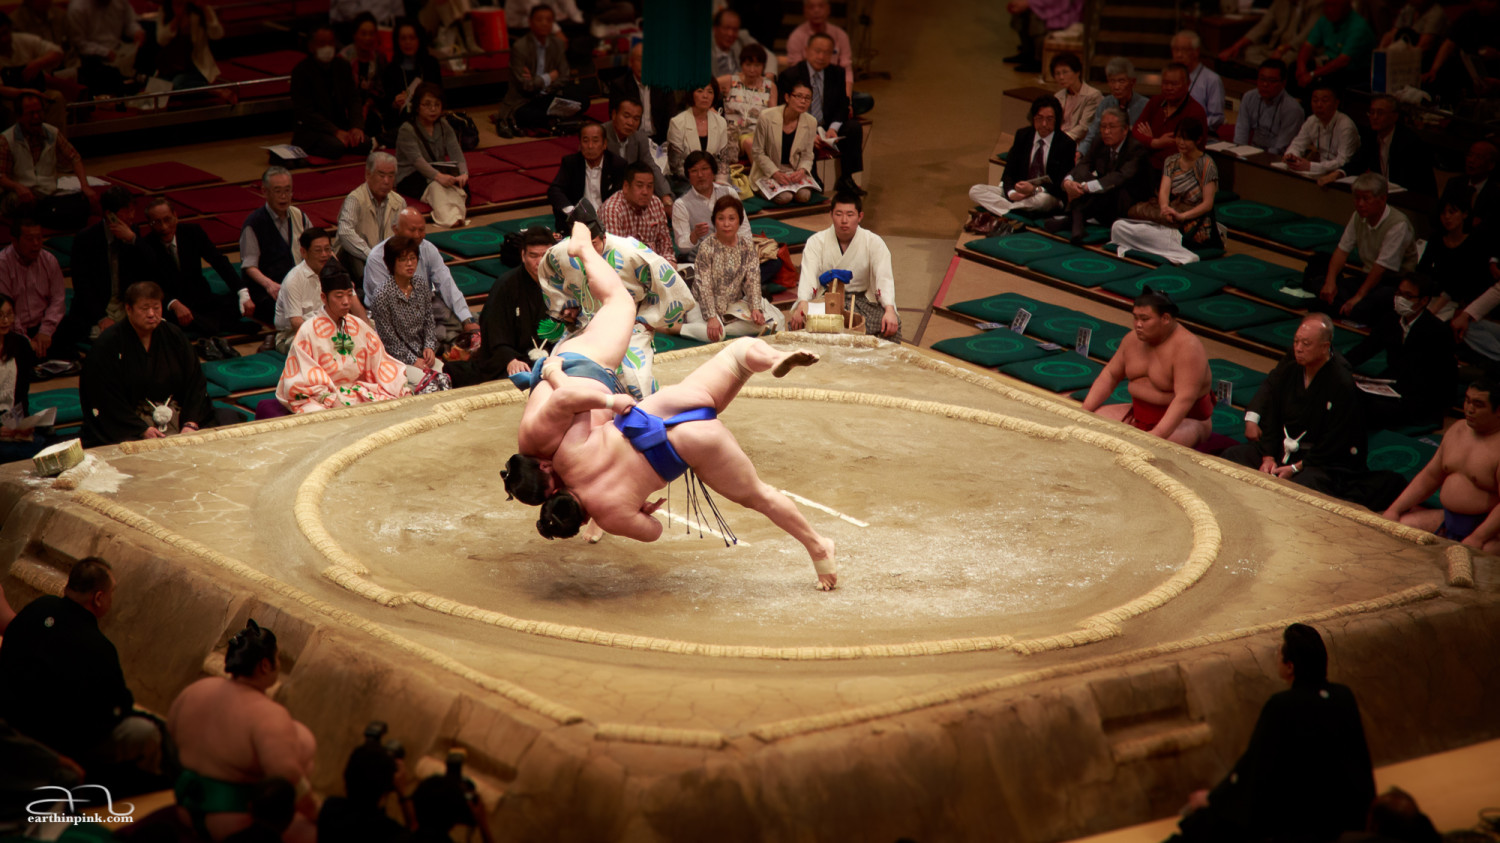 An unusually action-packed sumo wrestle at the tournament in Tokyo in May 2014. Most fights are over in the blink of an eye with one of the wrestlers stepping outside the ring, but this was a captivating exception.